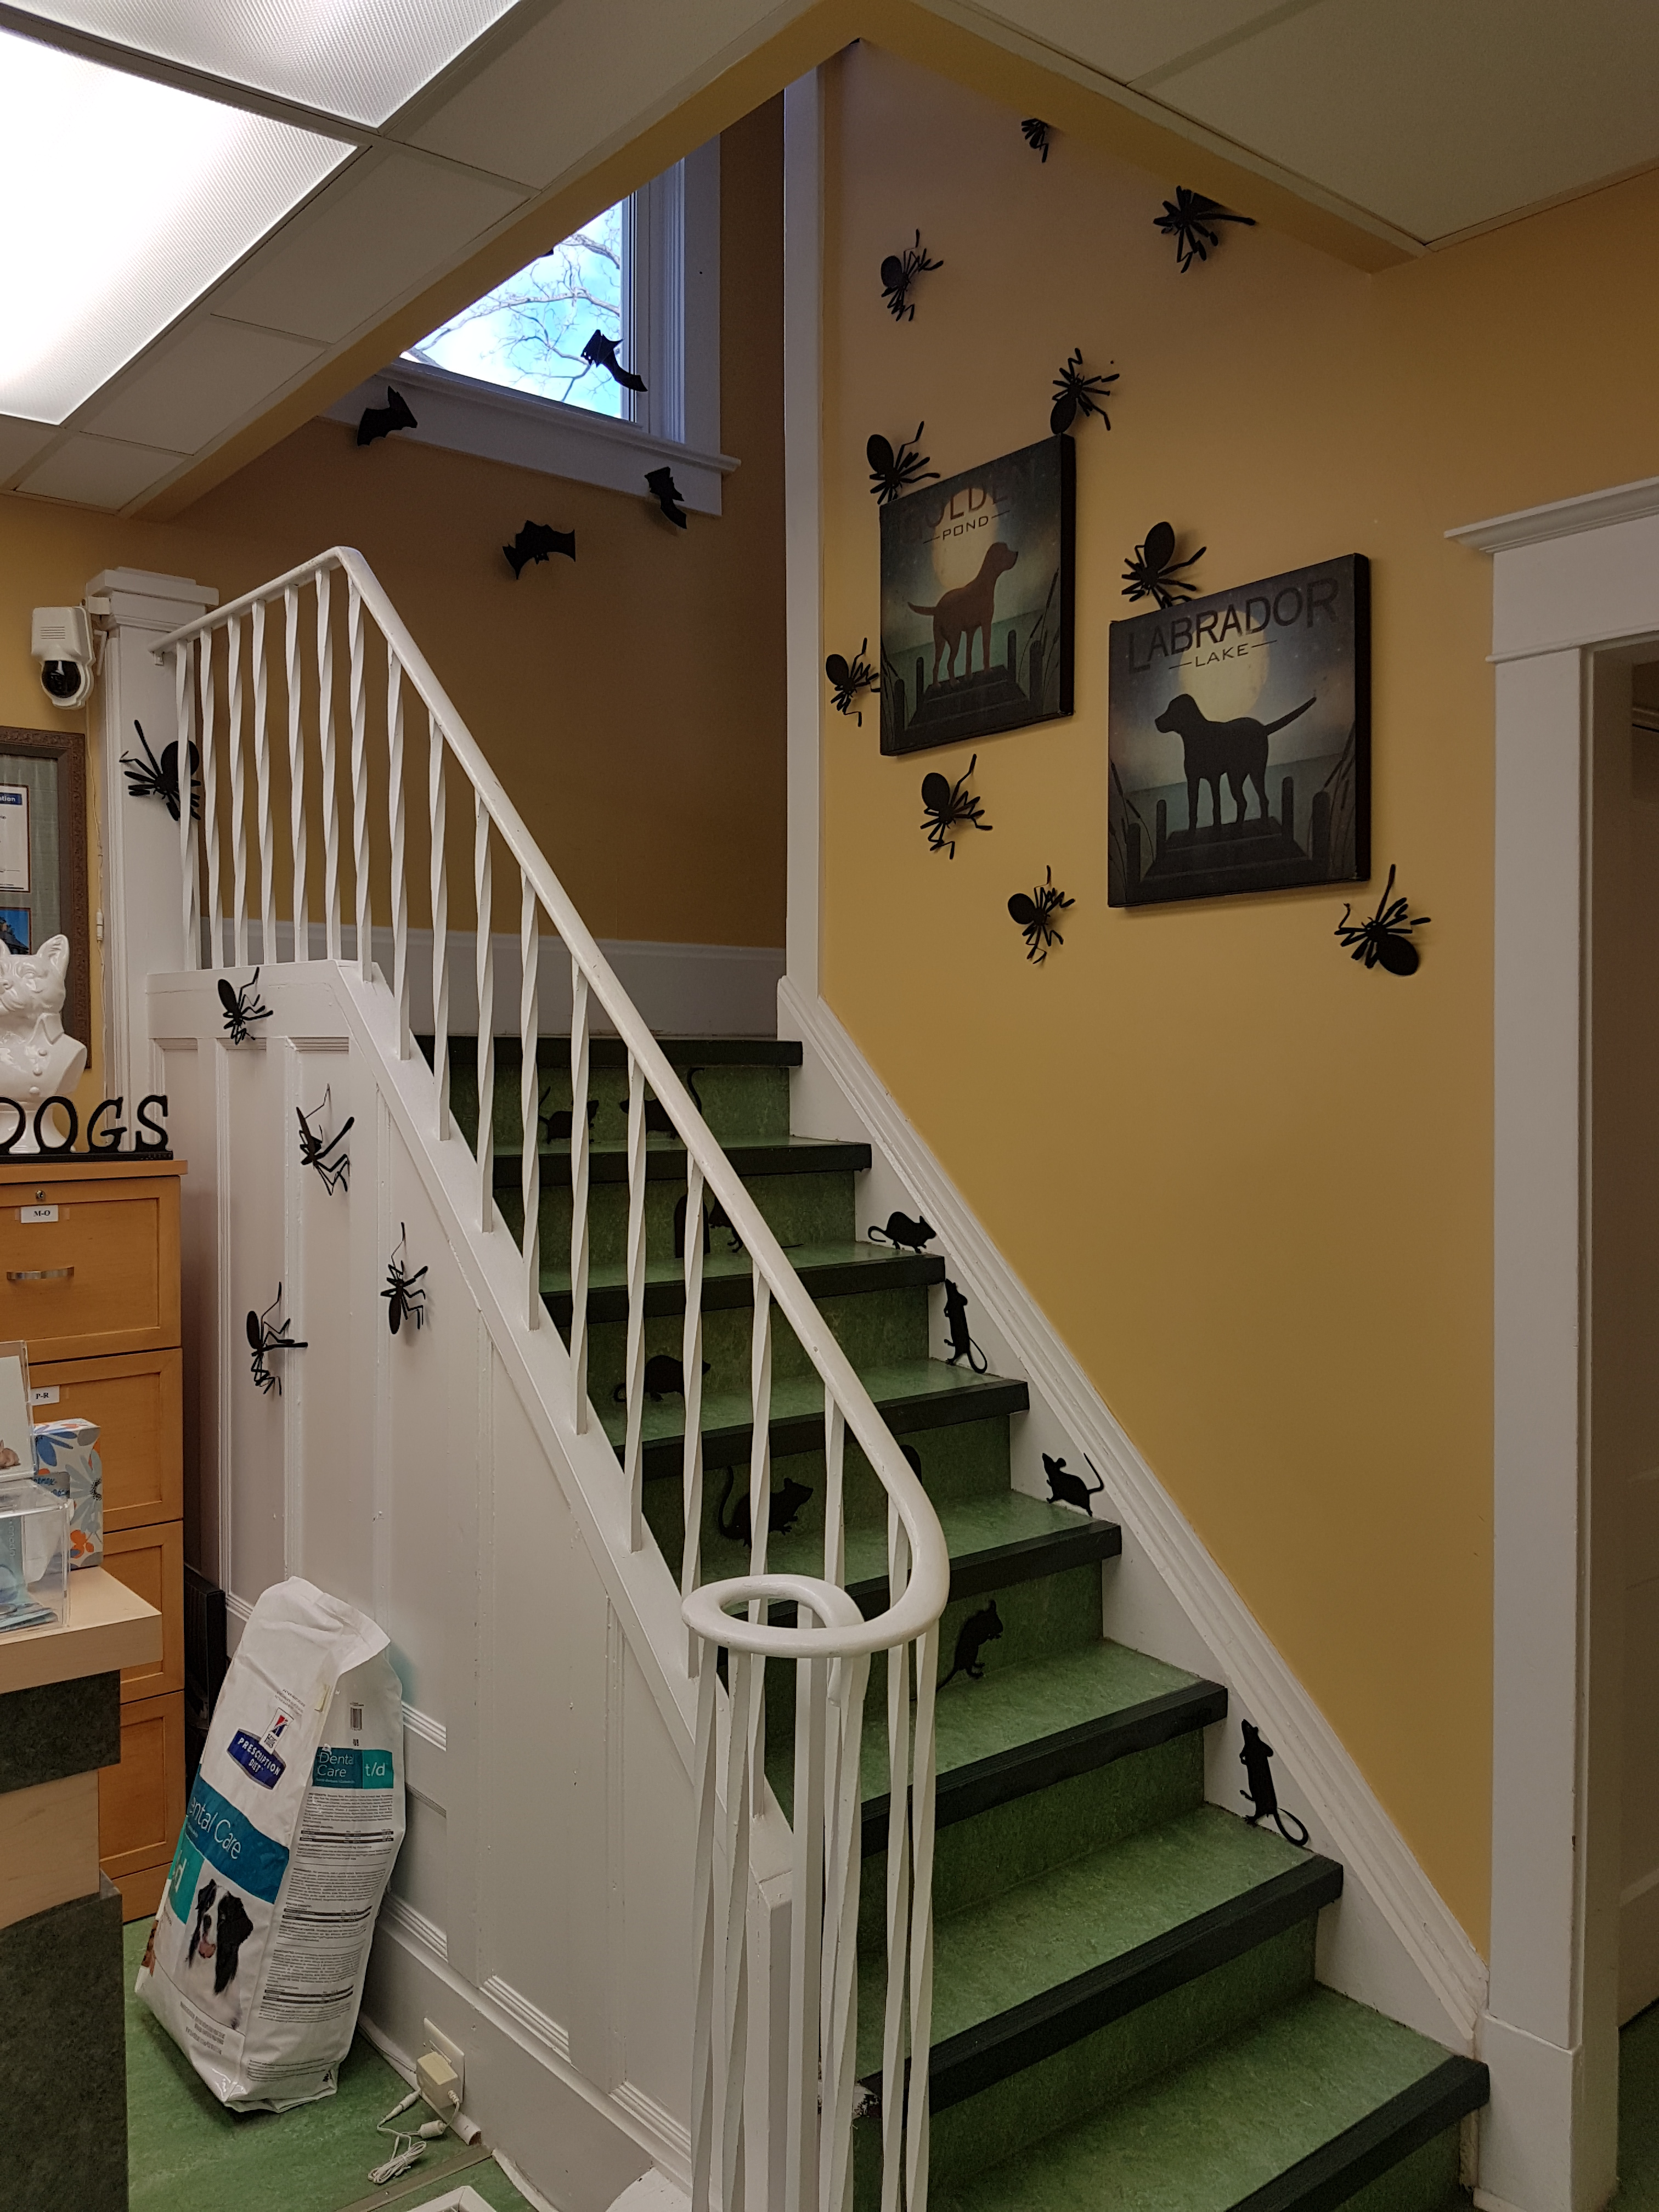 Halloween 2017 Decorations - Stairs